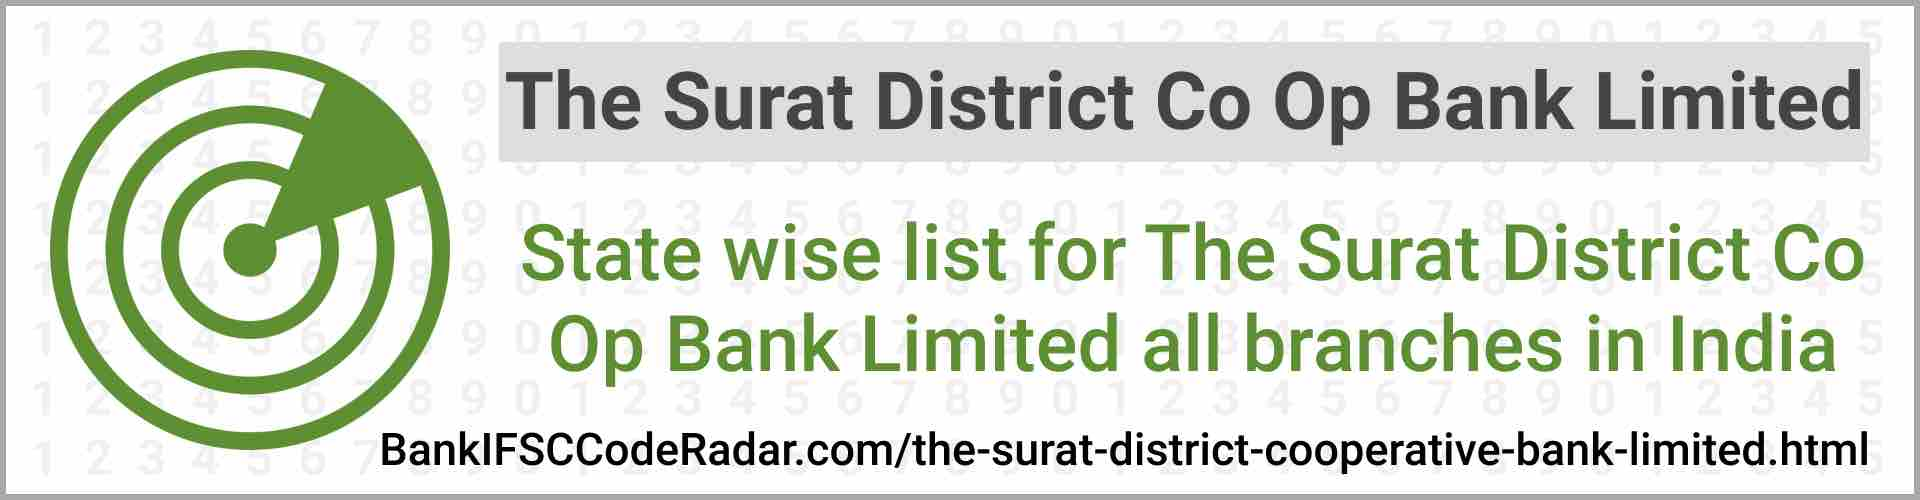 The Surat District Cooperative Bank Limited All Branches India